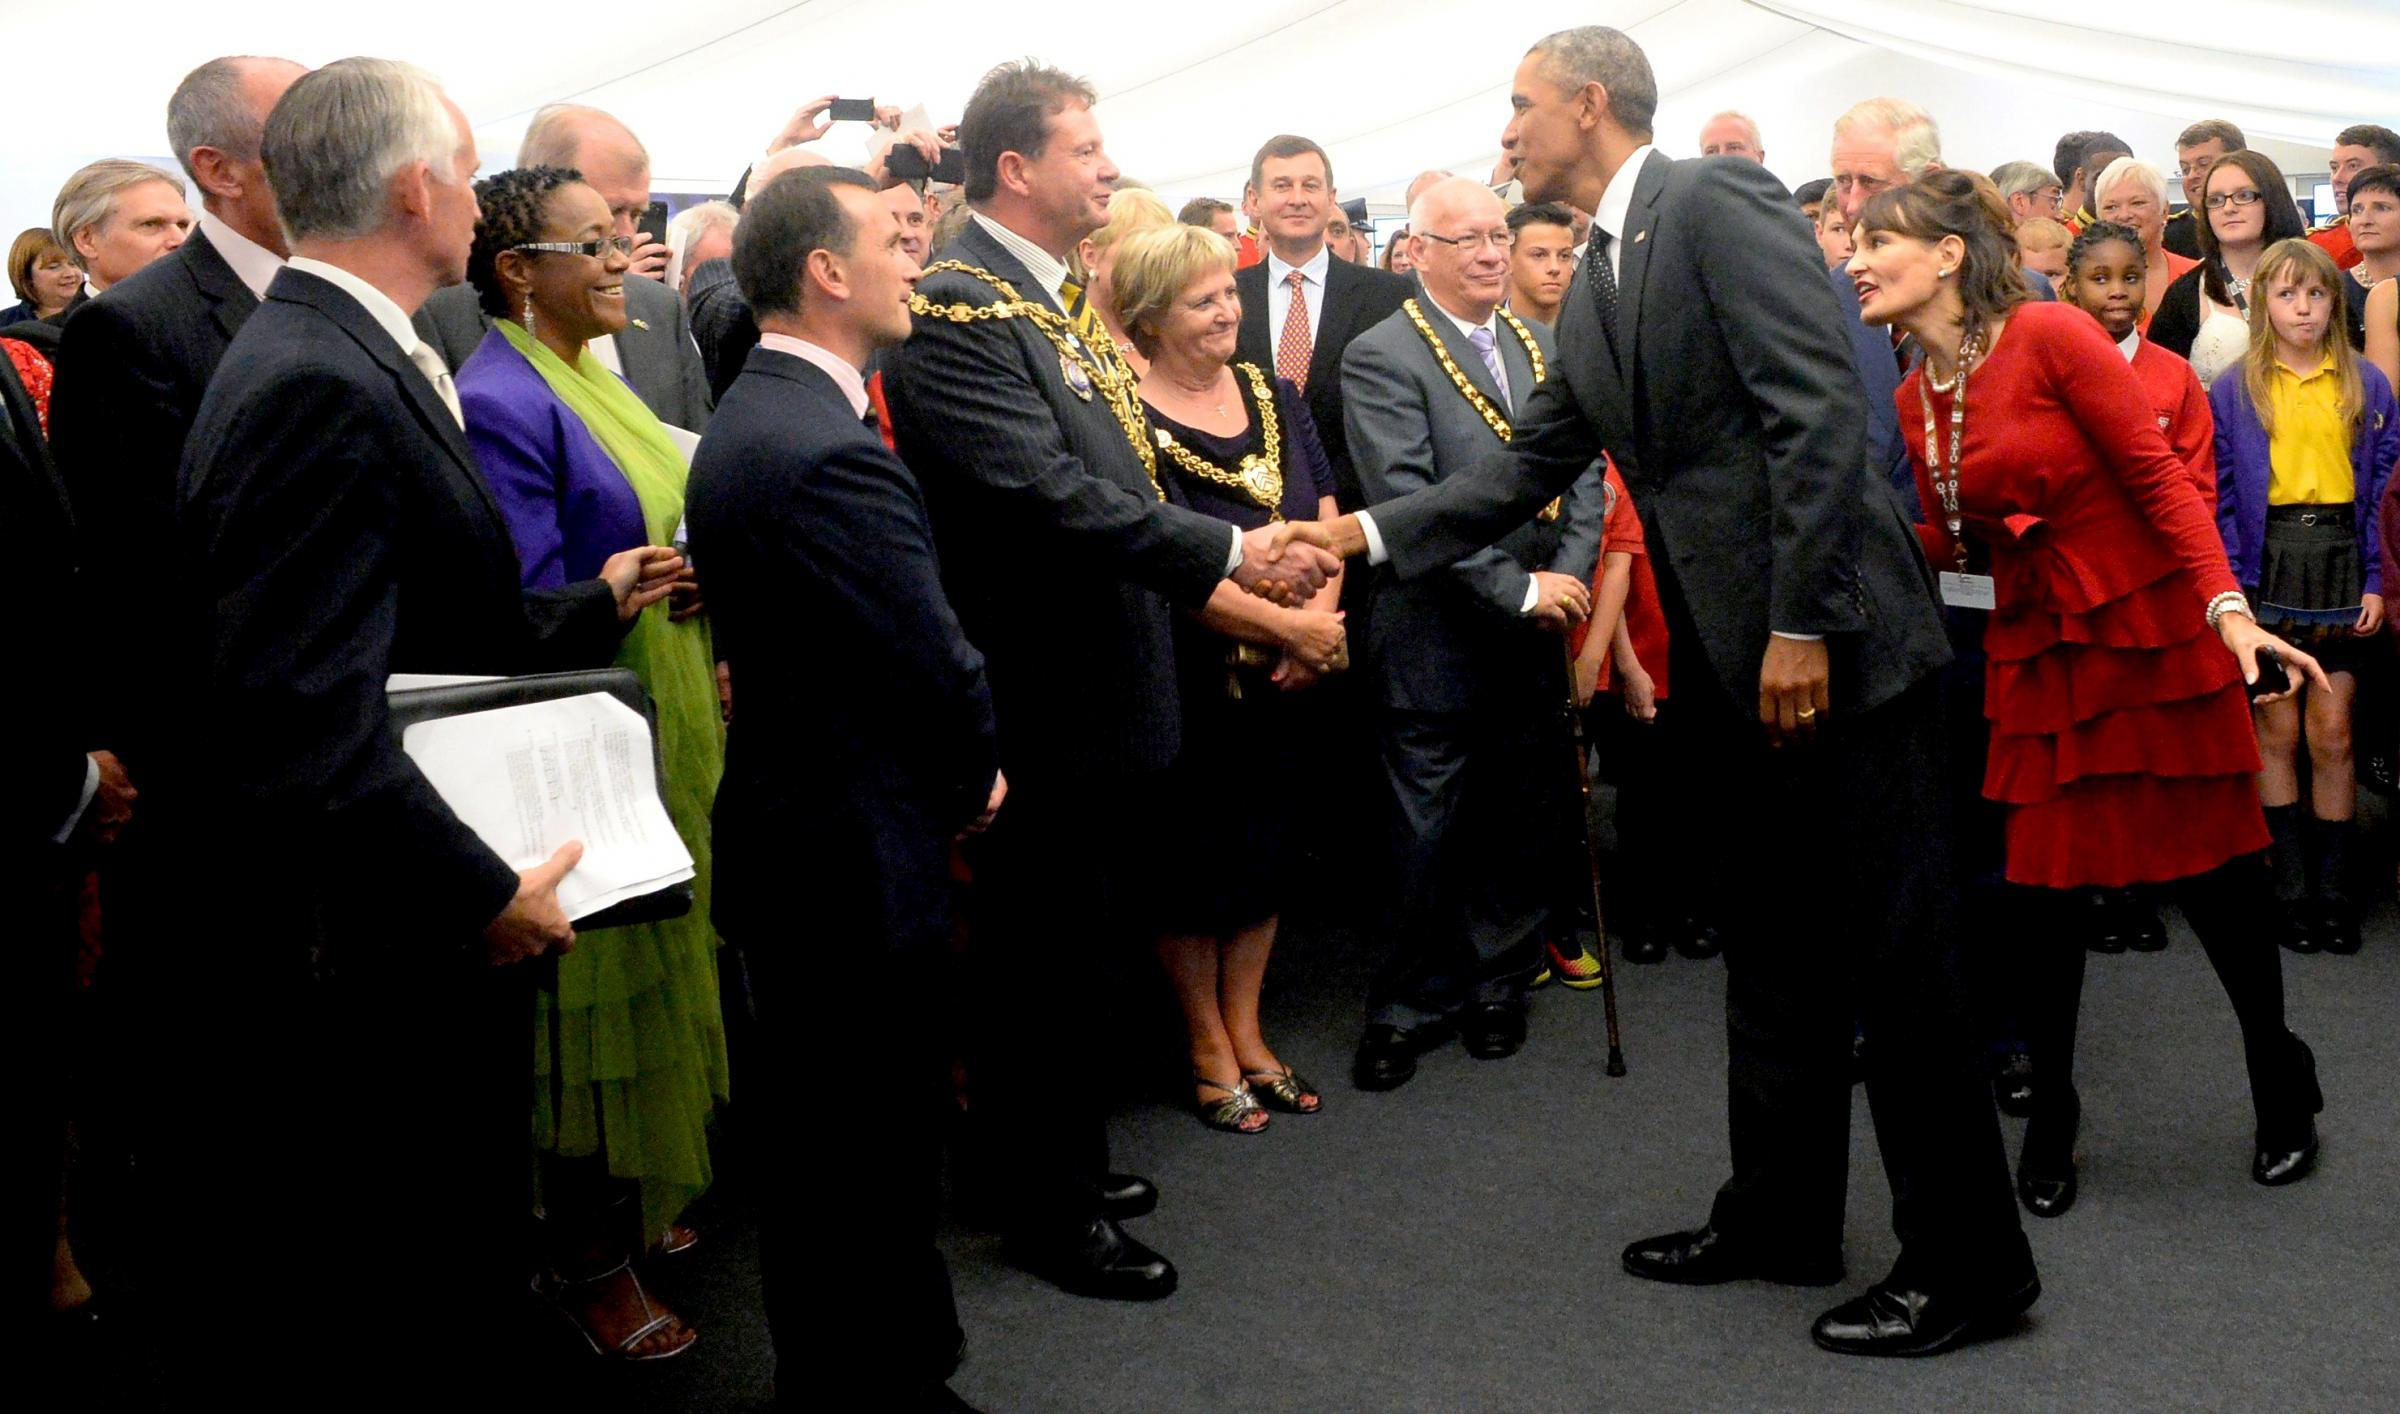 NICE TO SEE YOU – President Barack Obama shakes the hand of Newport Mayor councillor Matthew Evans